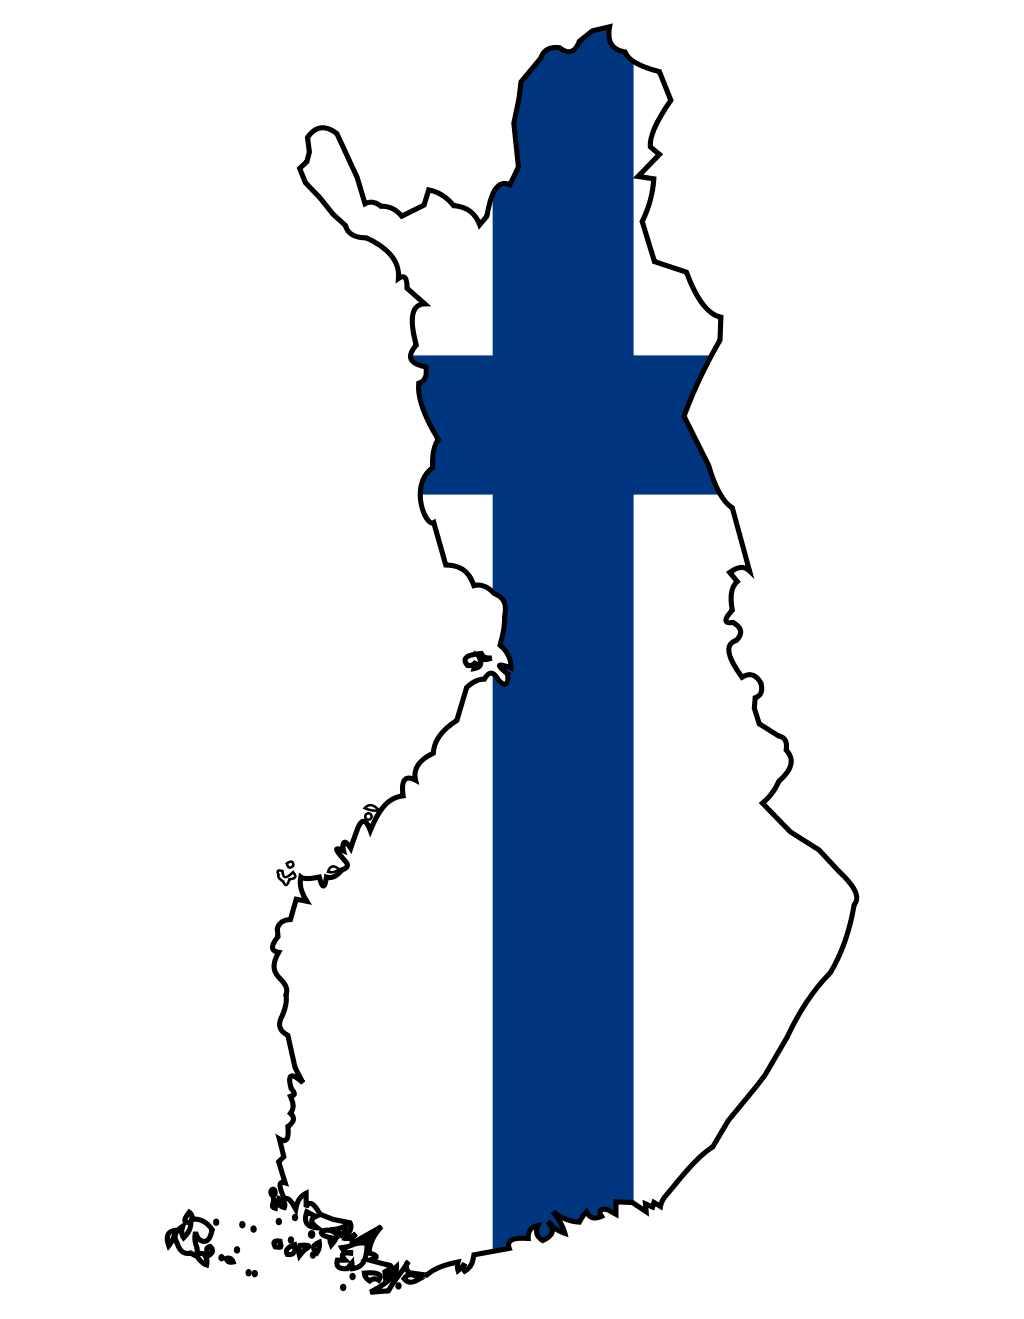 Finland Png